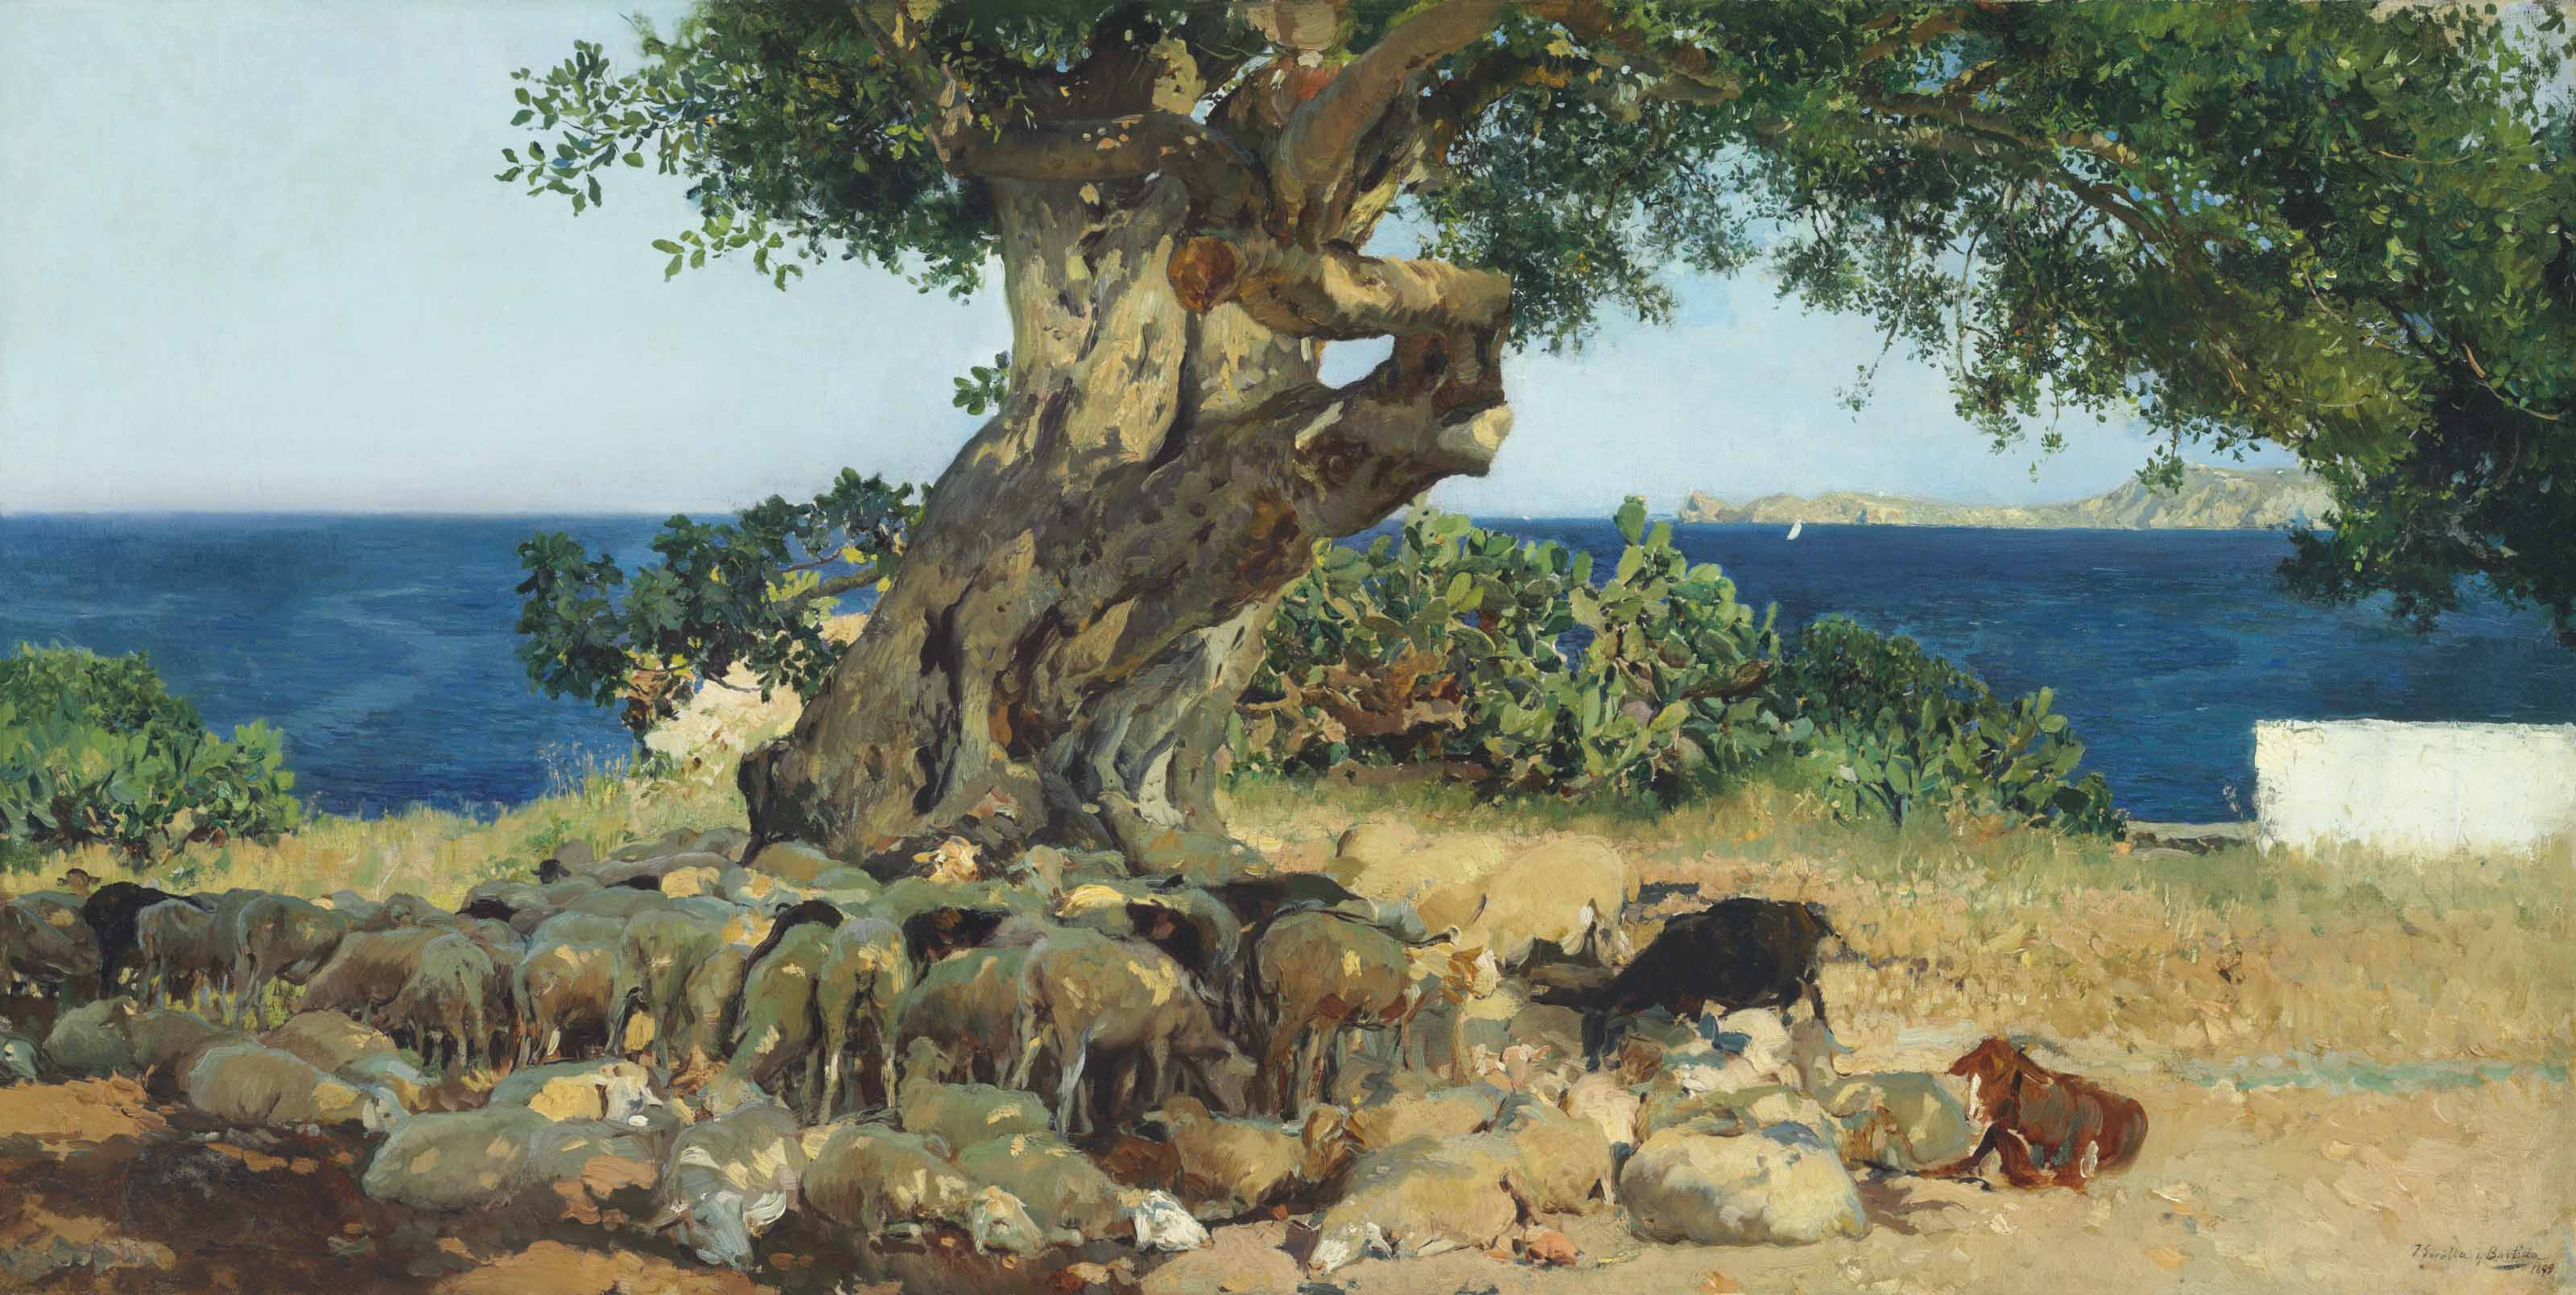 Algarrobo (The Carob Tree)